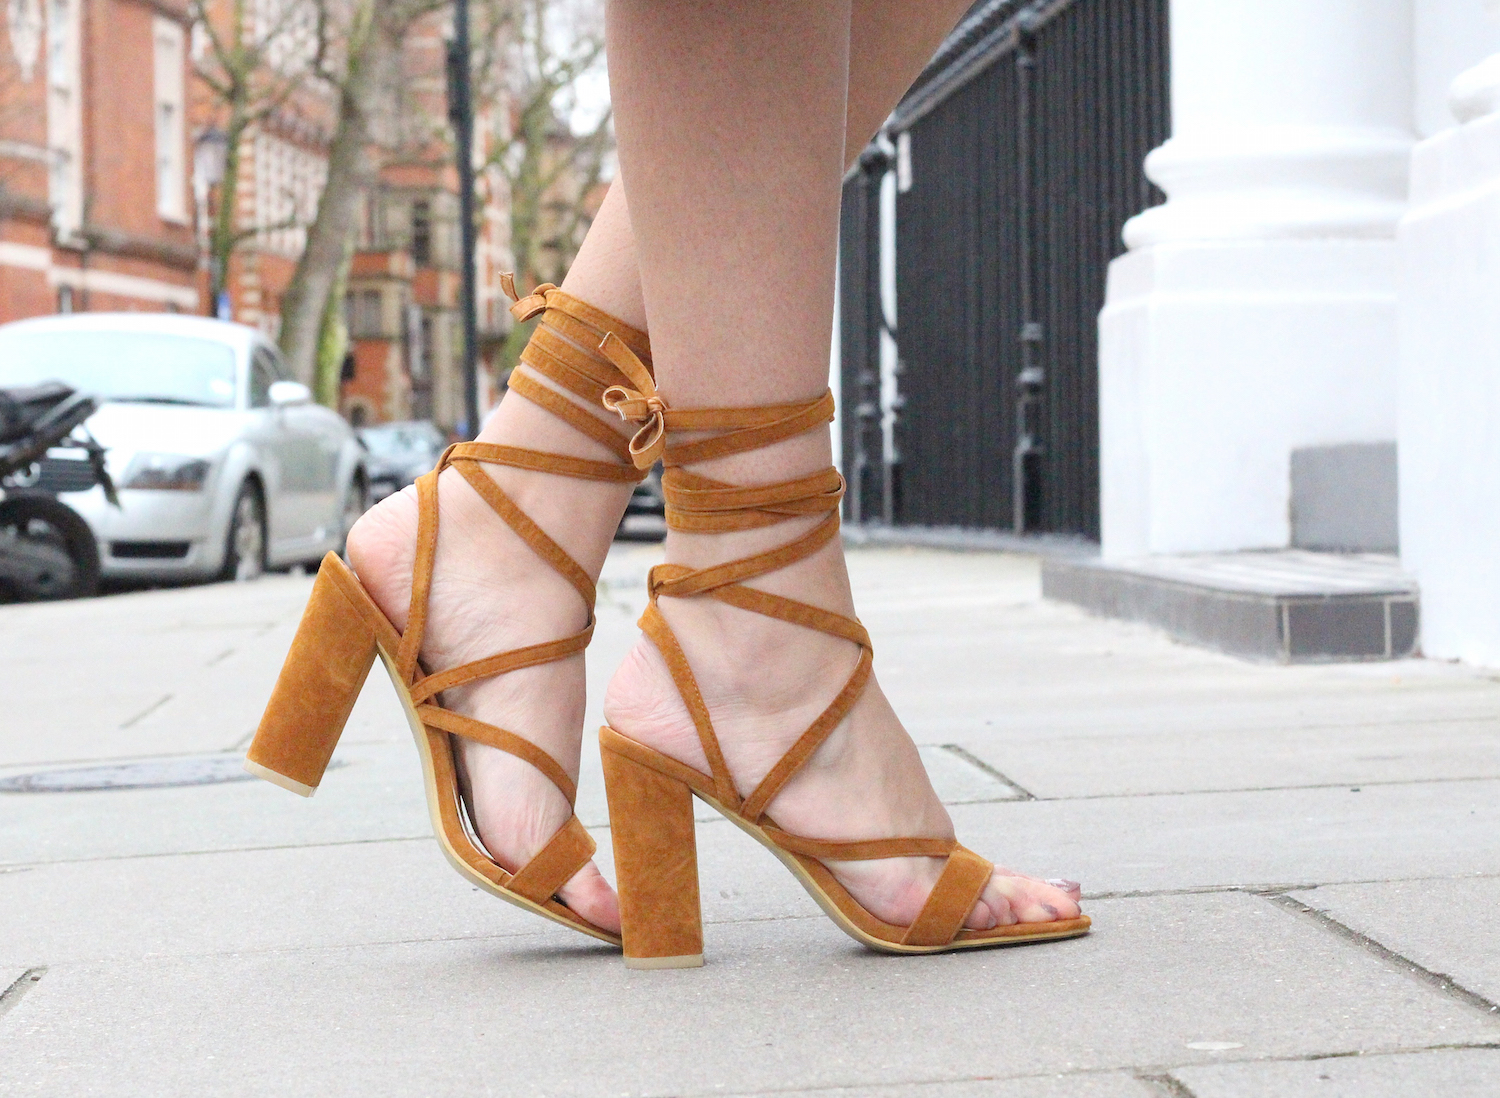 peexo fashion blogger wearing lace up sandals from simmi shoes